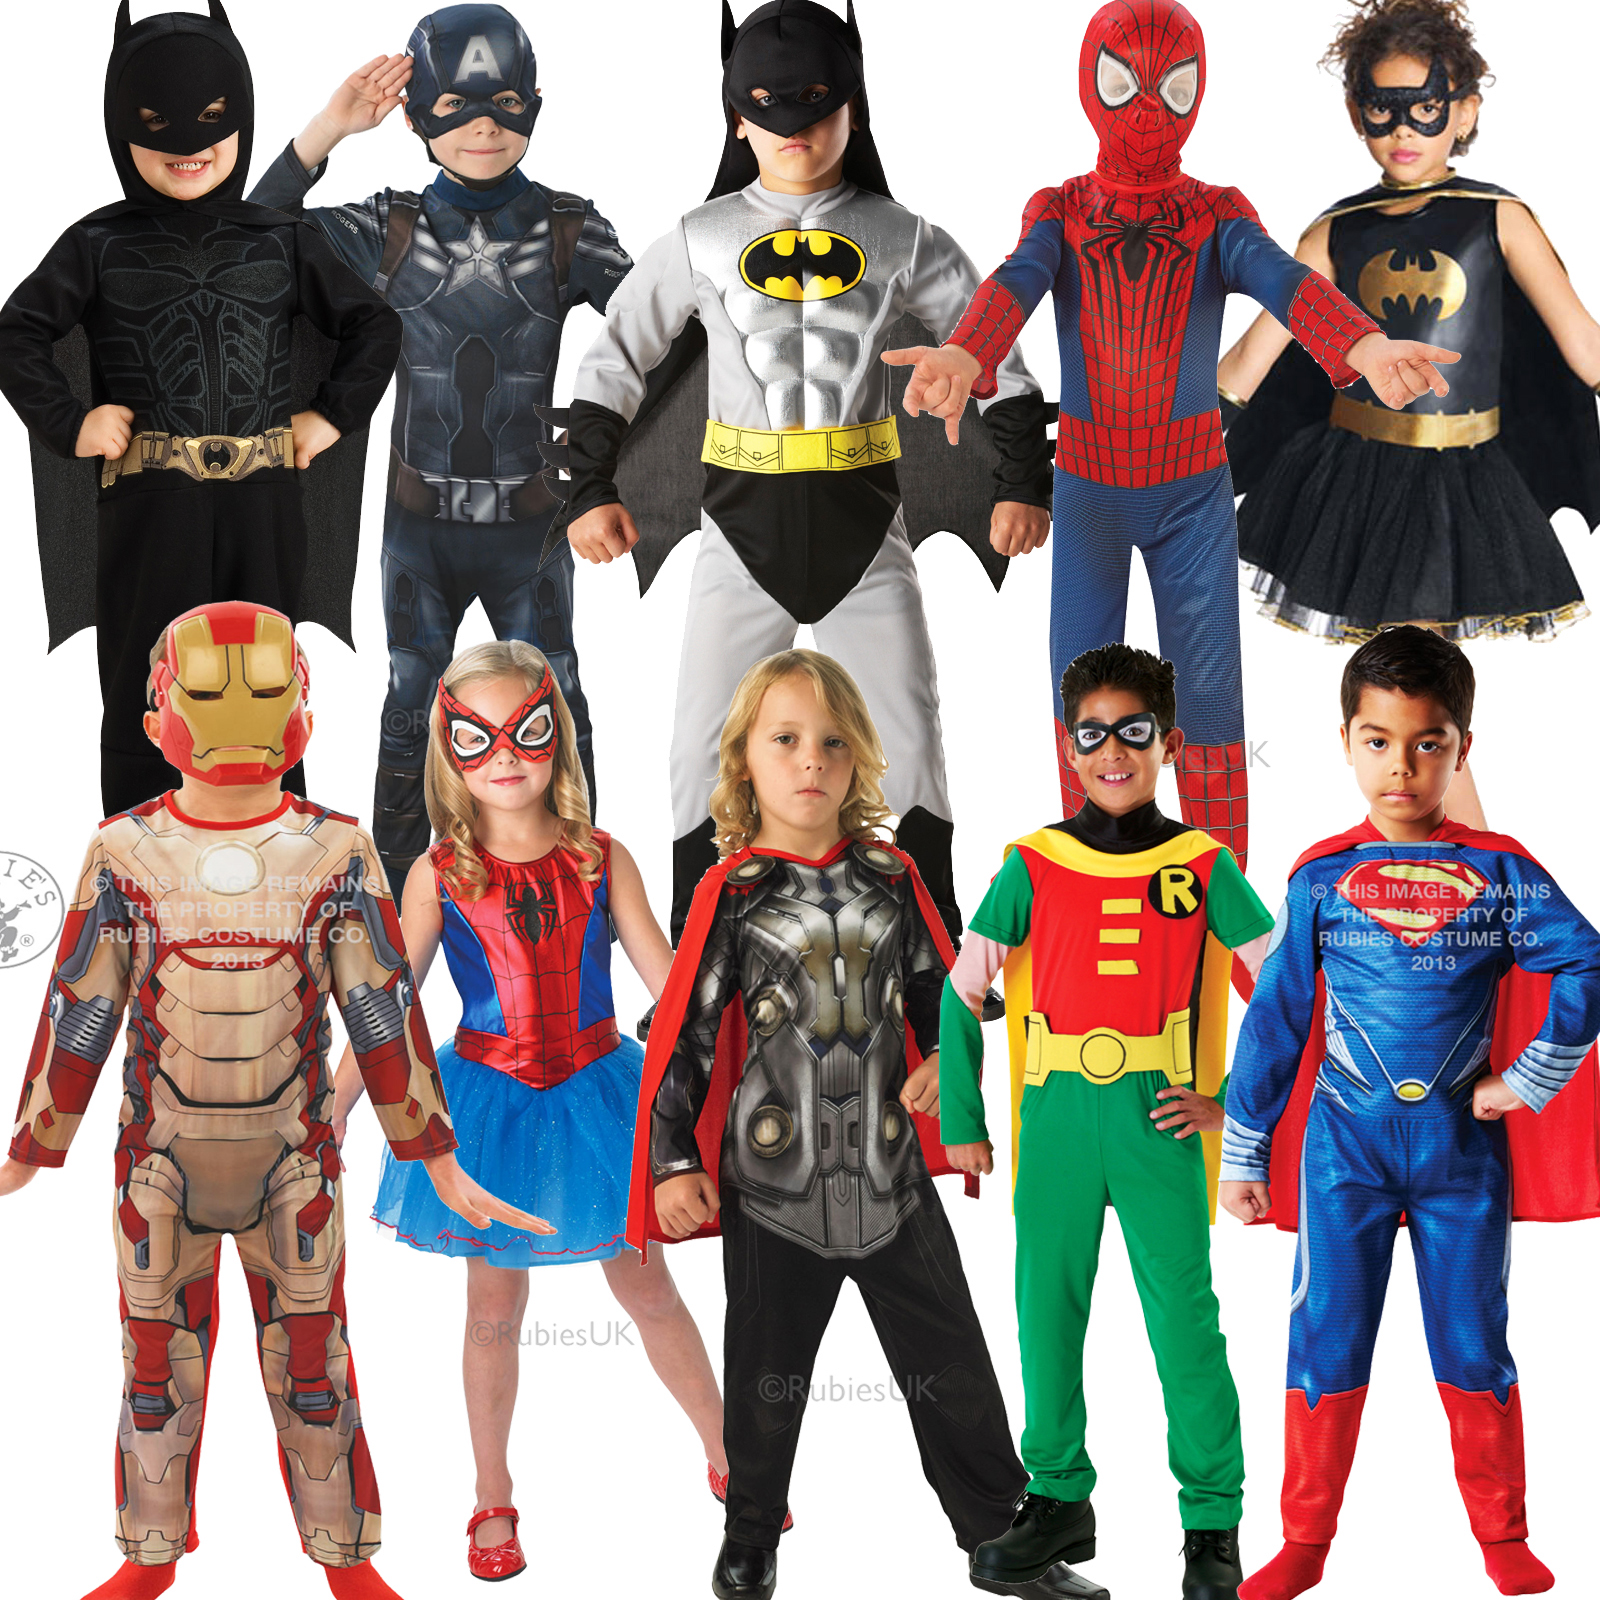 Sentinel Childrens Super Hero Marvel Dc Comic Book Week Day Fancy Dress Costume Outfit  sc 1 st  eBay & Childrens Super Hero Marvel Dc Comic Book Week Day Fancy Dress ...